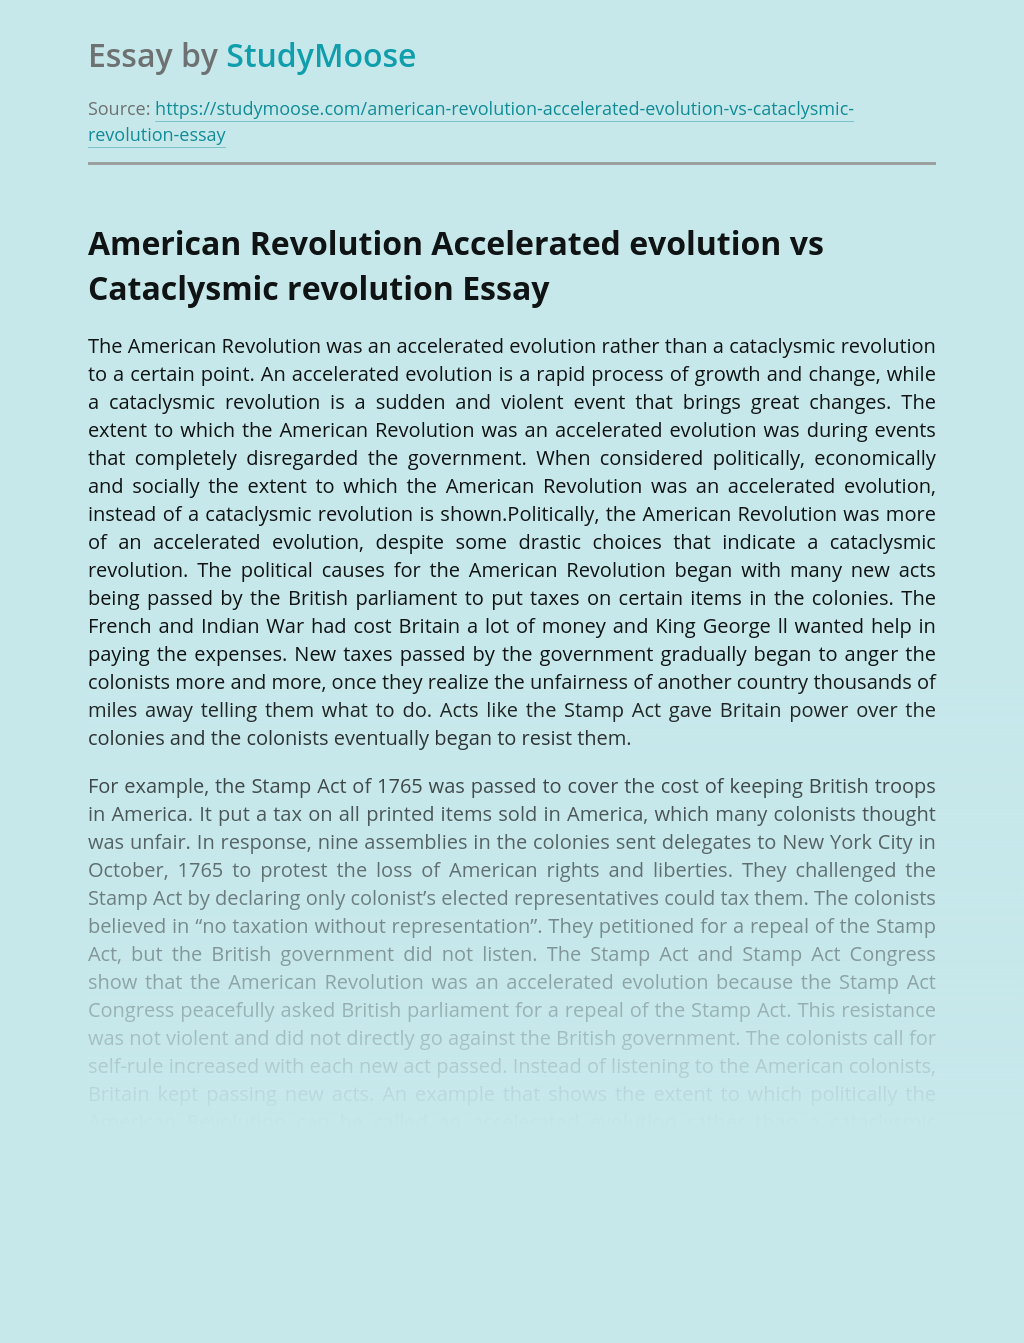 American Revolution Accelerated evolution vs Cataclysmic revolution